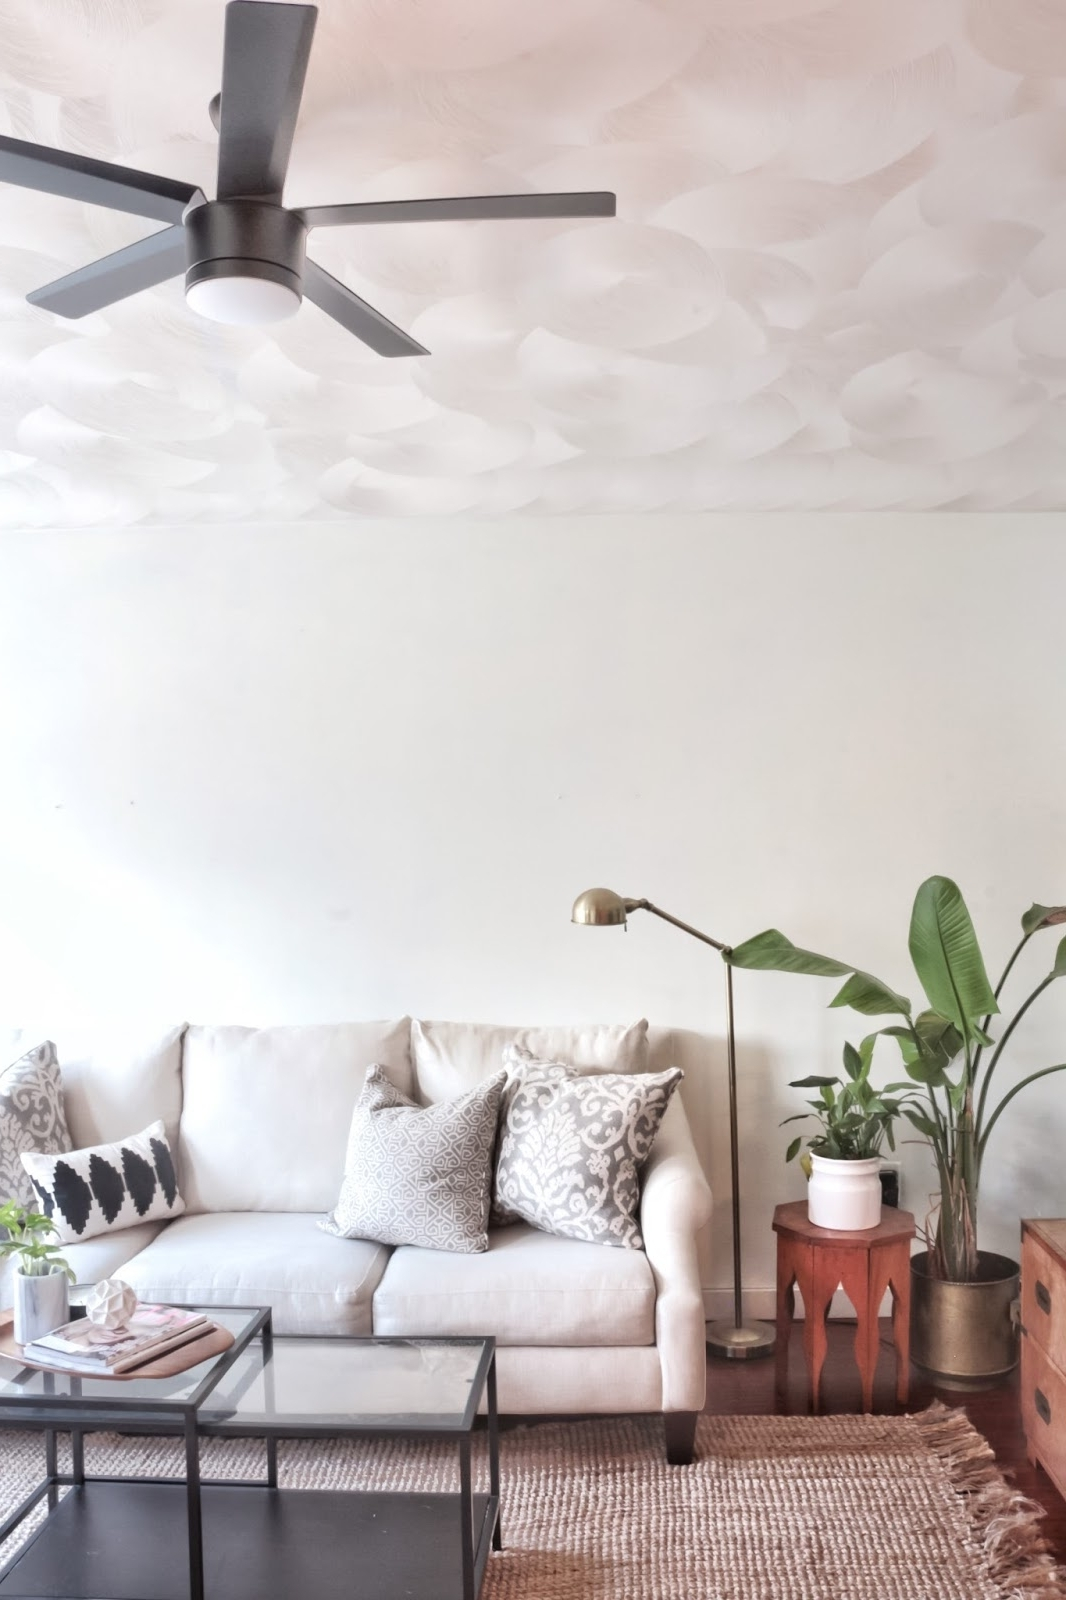 Widely Used 10 Sleek And Stylish Lighted Ceiling Fans Under $200 (And Our New In Outdoor Ceiling Fans Under $ (View 20 of 20)